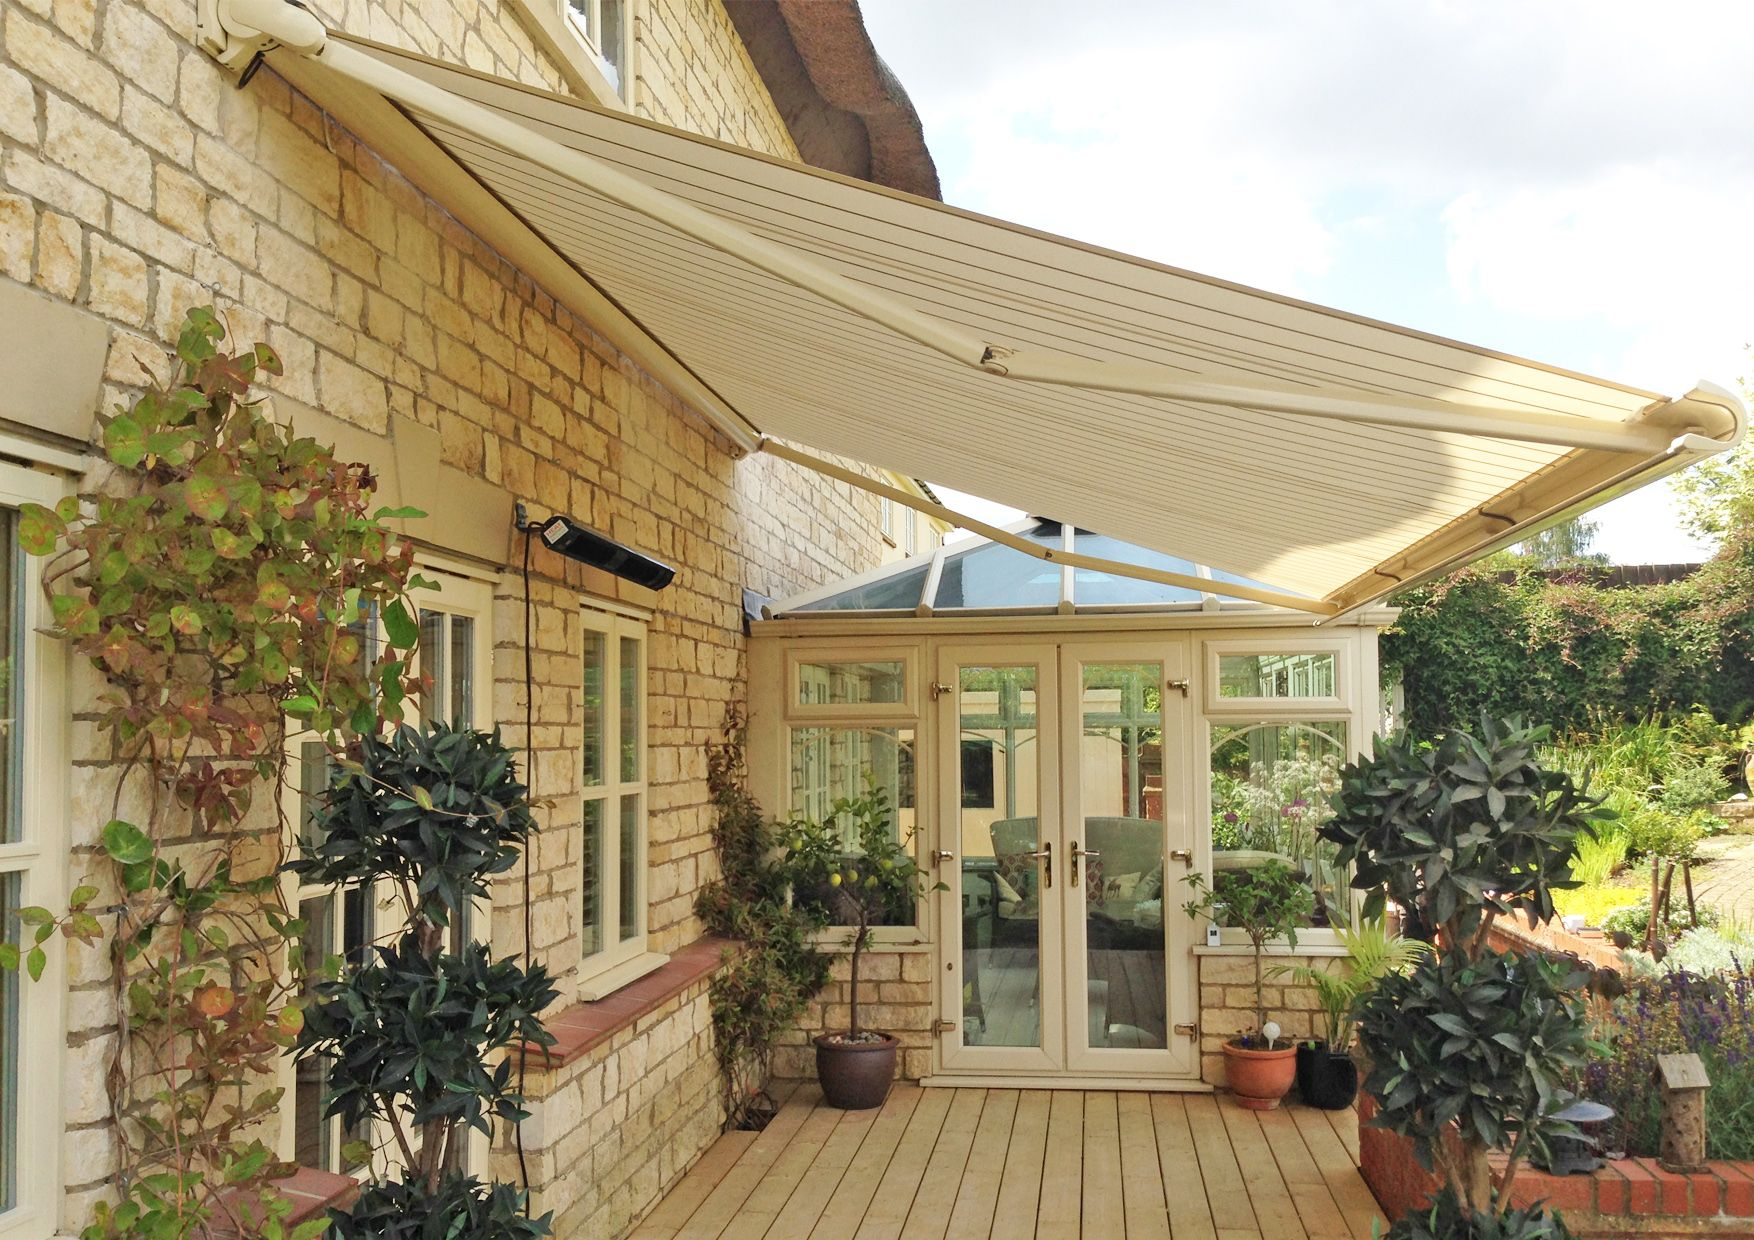 Enhance Your Patio Patio Awning Patio Awning Patio Awning